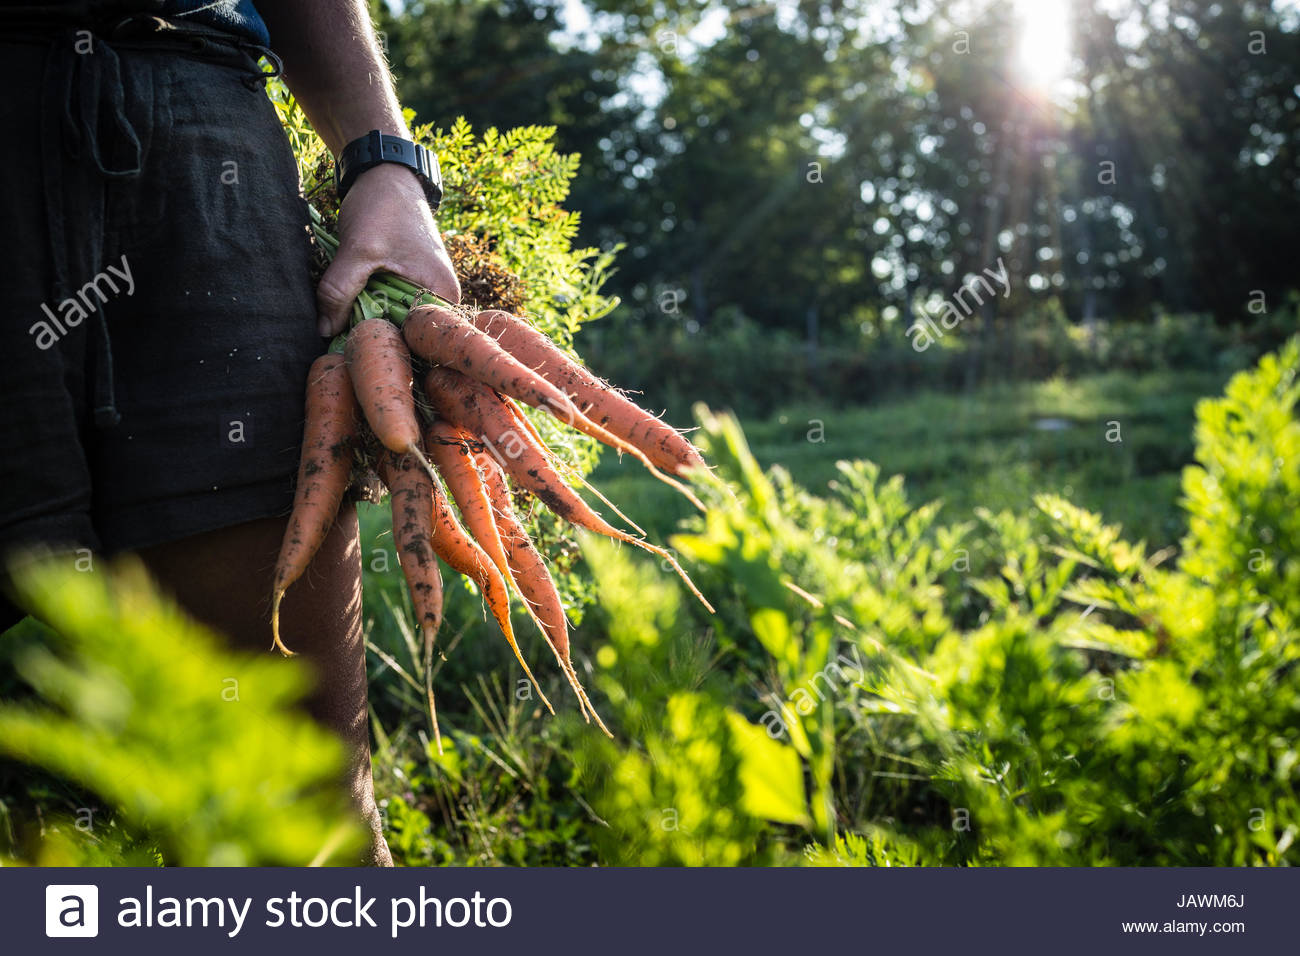 A farmer holds a handful of carrots she has just pulled from her crop. - Stock Image